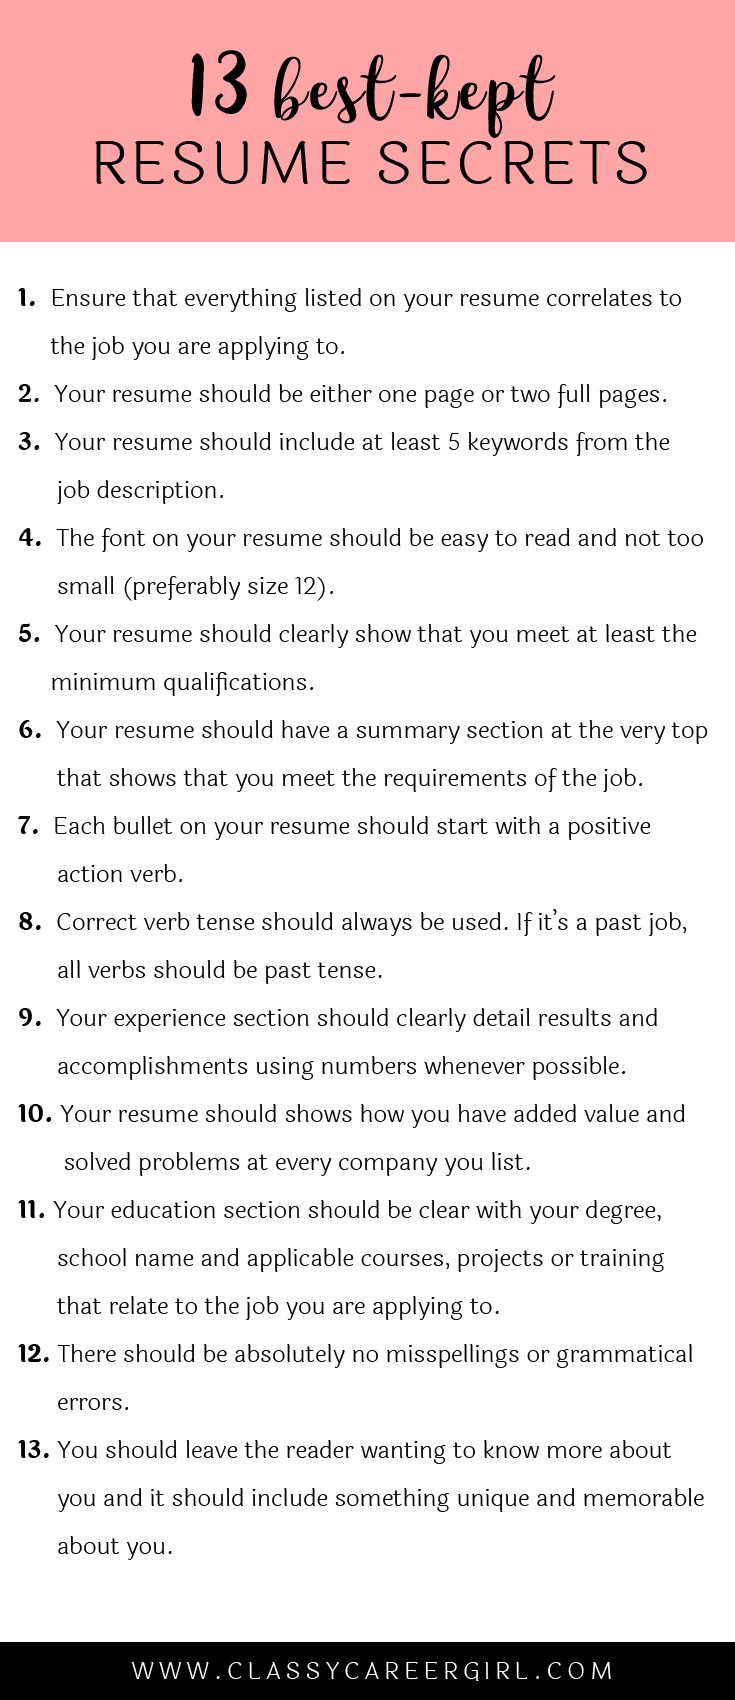 Opposenewapstandardsus  Pretty  Ideas About Resume On Pinterest  Cv Format Resume Cv And  With Remarkable Some Hiring Managers Will Toss Your Resume Out If You Dont Know These  With Extraordinary Construction Project Manager Resume Sample Also Federal Resume Writer In Addition Objective For Resume Internship And Objective In A Resume Examples As Well As Best Professional Resumes Additionally Resumes For Servers From Pinterestcom With Opposenewapstandardsus  Remarkable  Ideas About Resume On Pinterest  Cv Format Resume Cv And  With Extraordinary Some Hiring Managers Will Toss Your Resume Out If You Dont Know These  And Pretty Construction Project Manager Resume Sample Also Federal Resume Writer In Addition Objective For Resume Internship From Pinterestcom